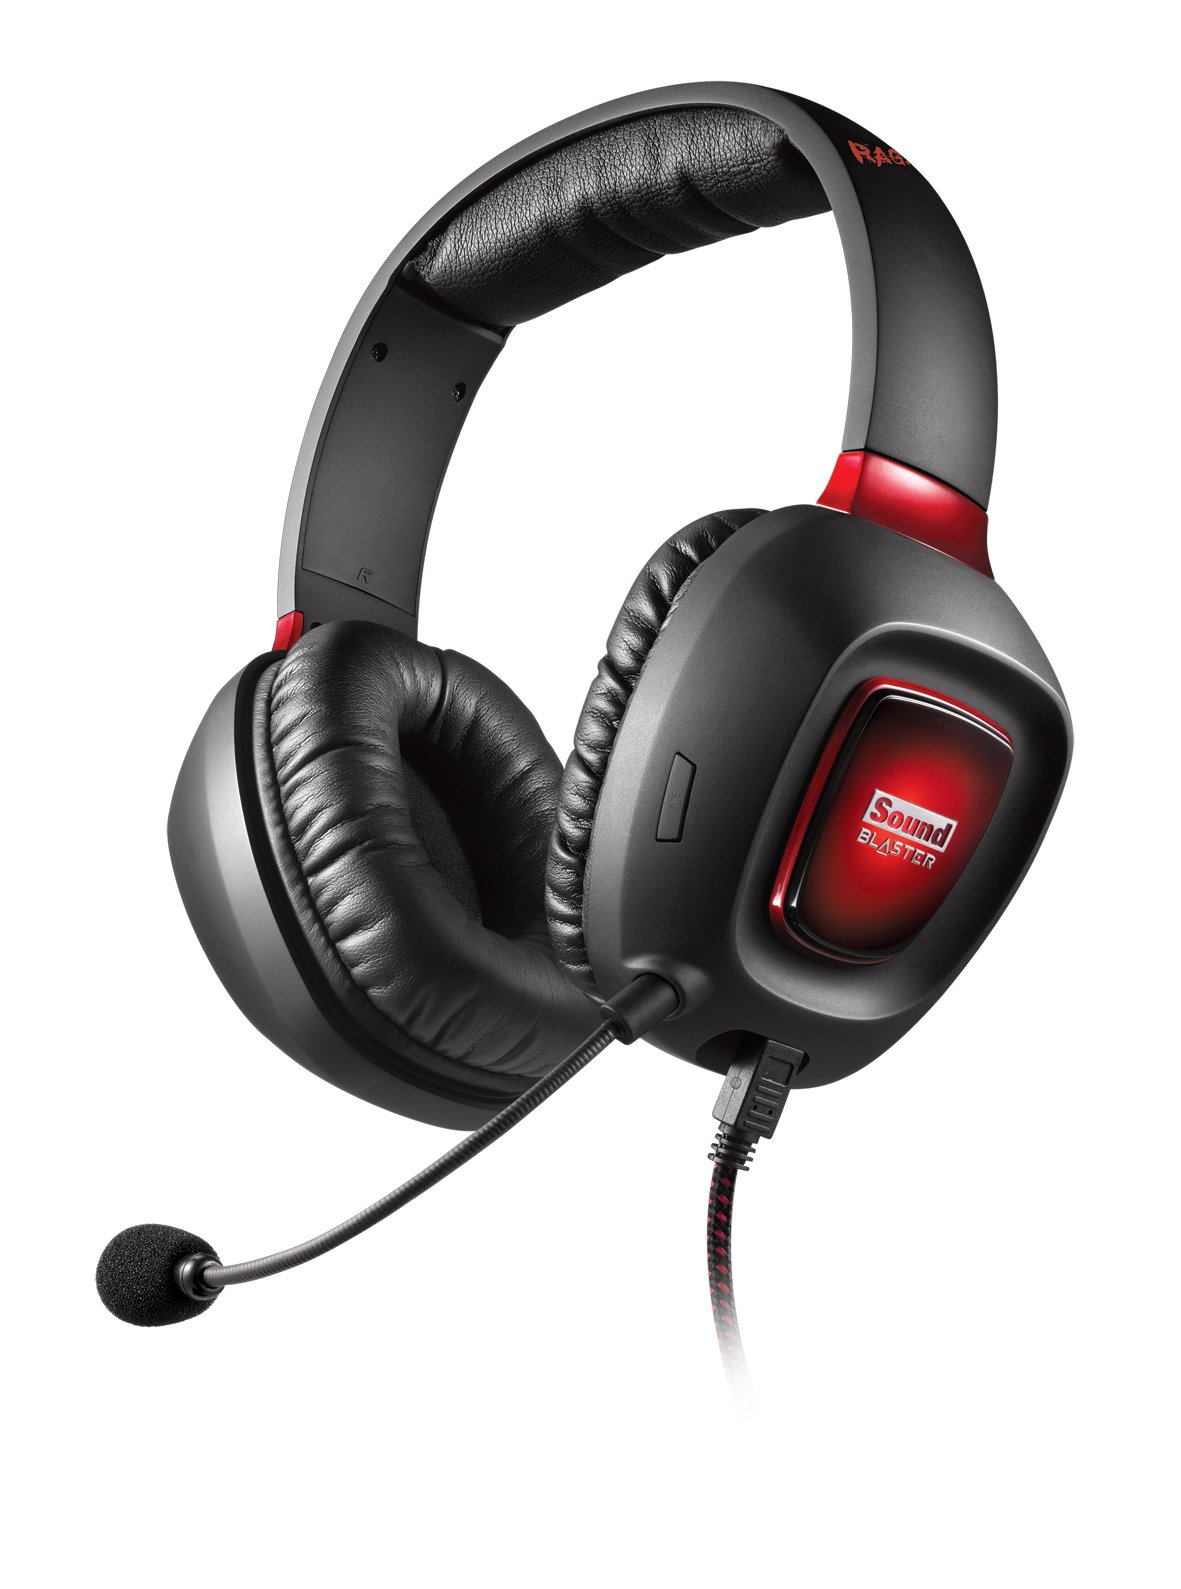 Creative Sound Blaster Tactic3D Rage USB Gaming Headset by Creative (Image #8)